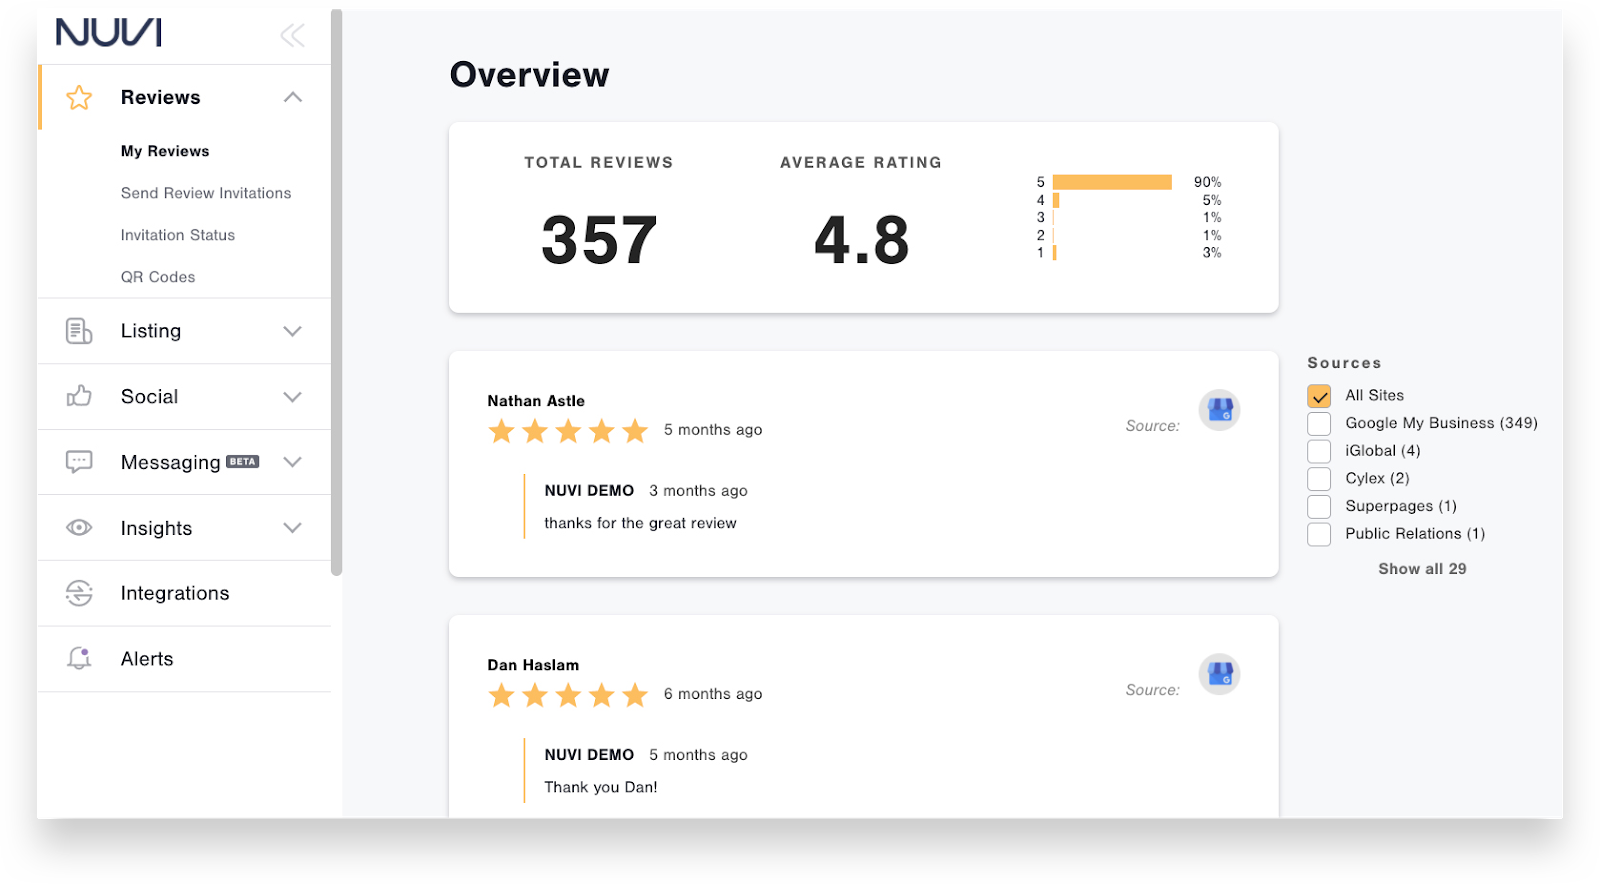 Nuvi review helps businesses to listen to and gather feedback from their audience and get positive reviews.